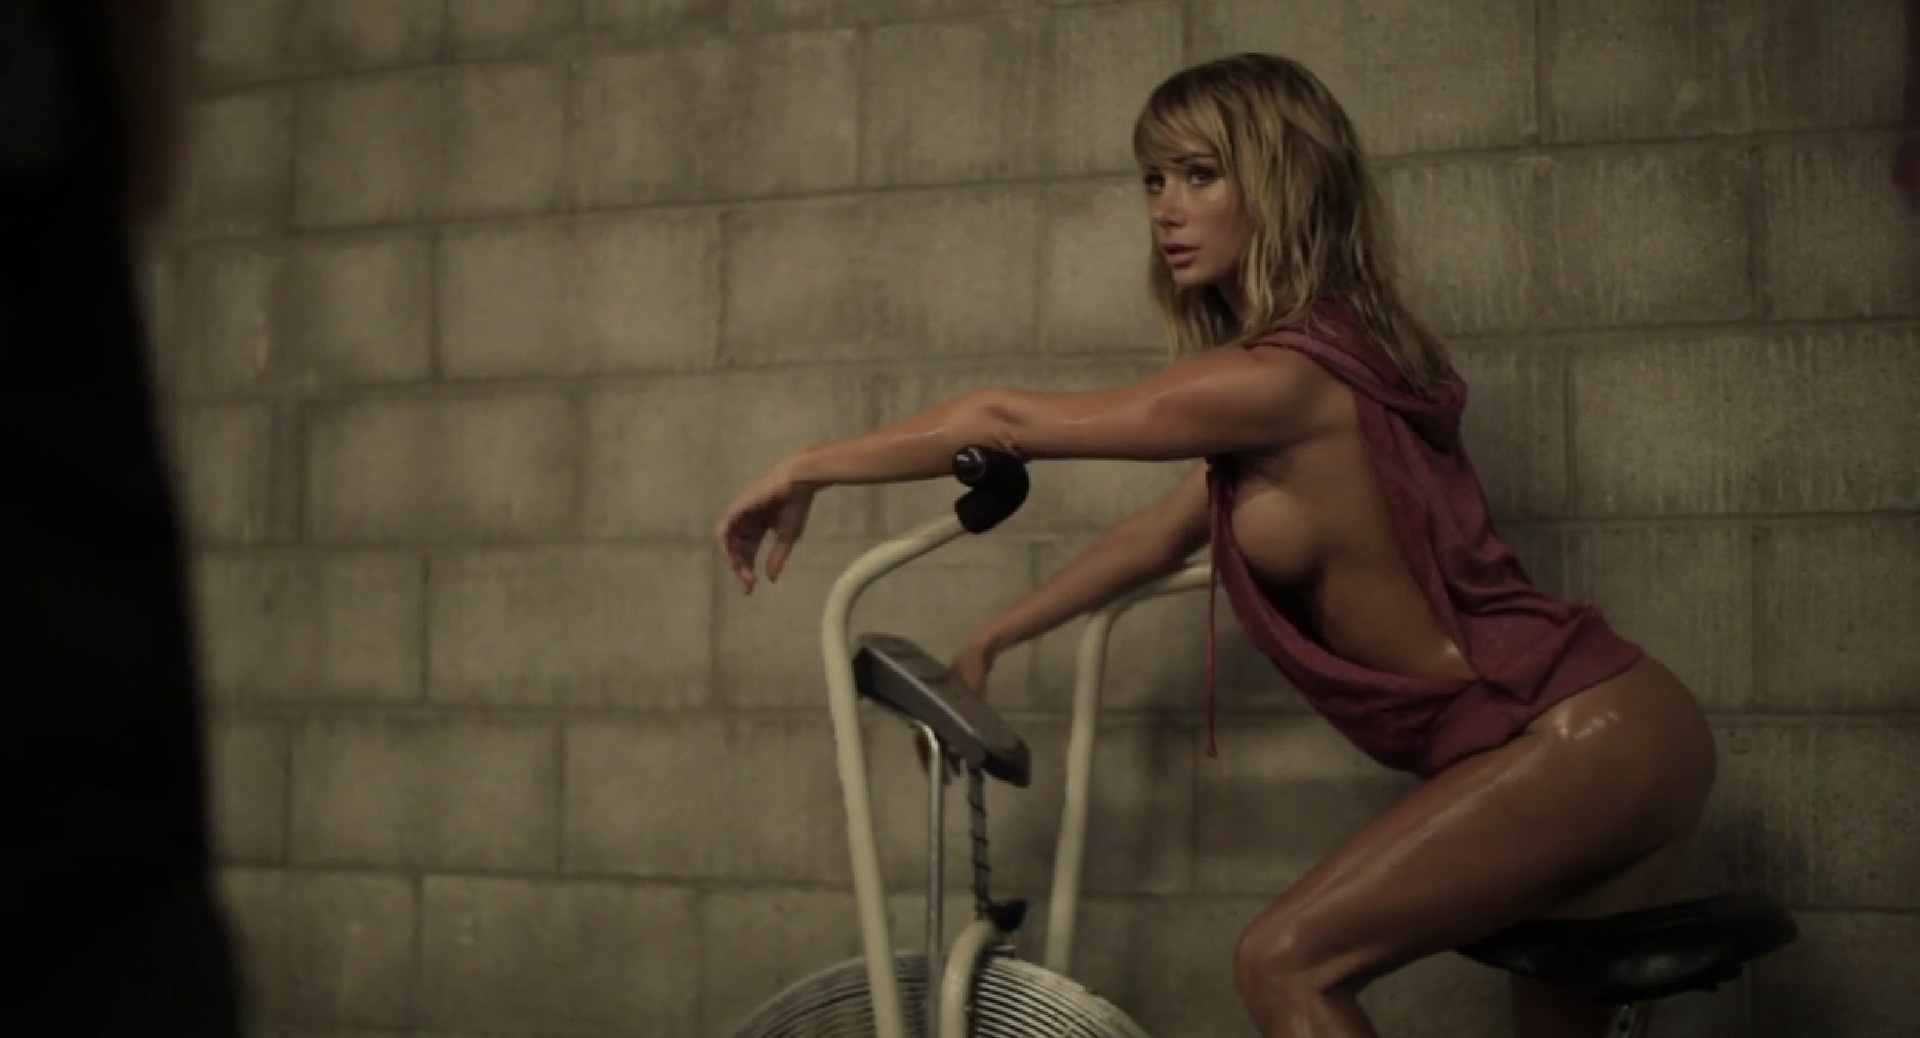 sara-underwood-mf-0503